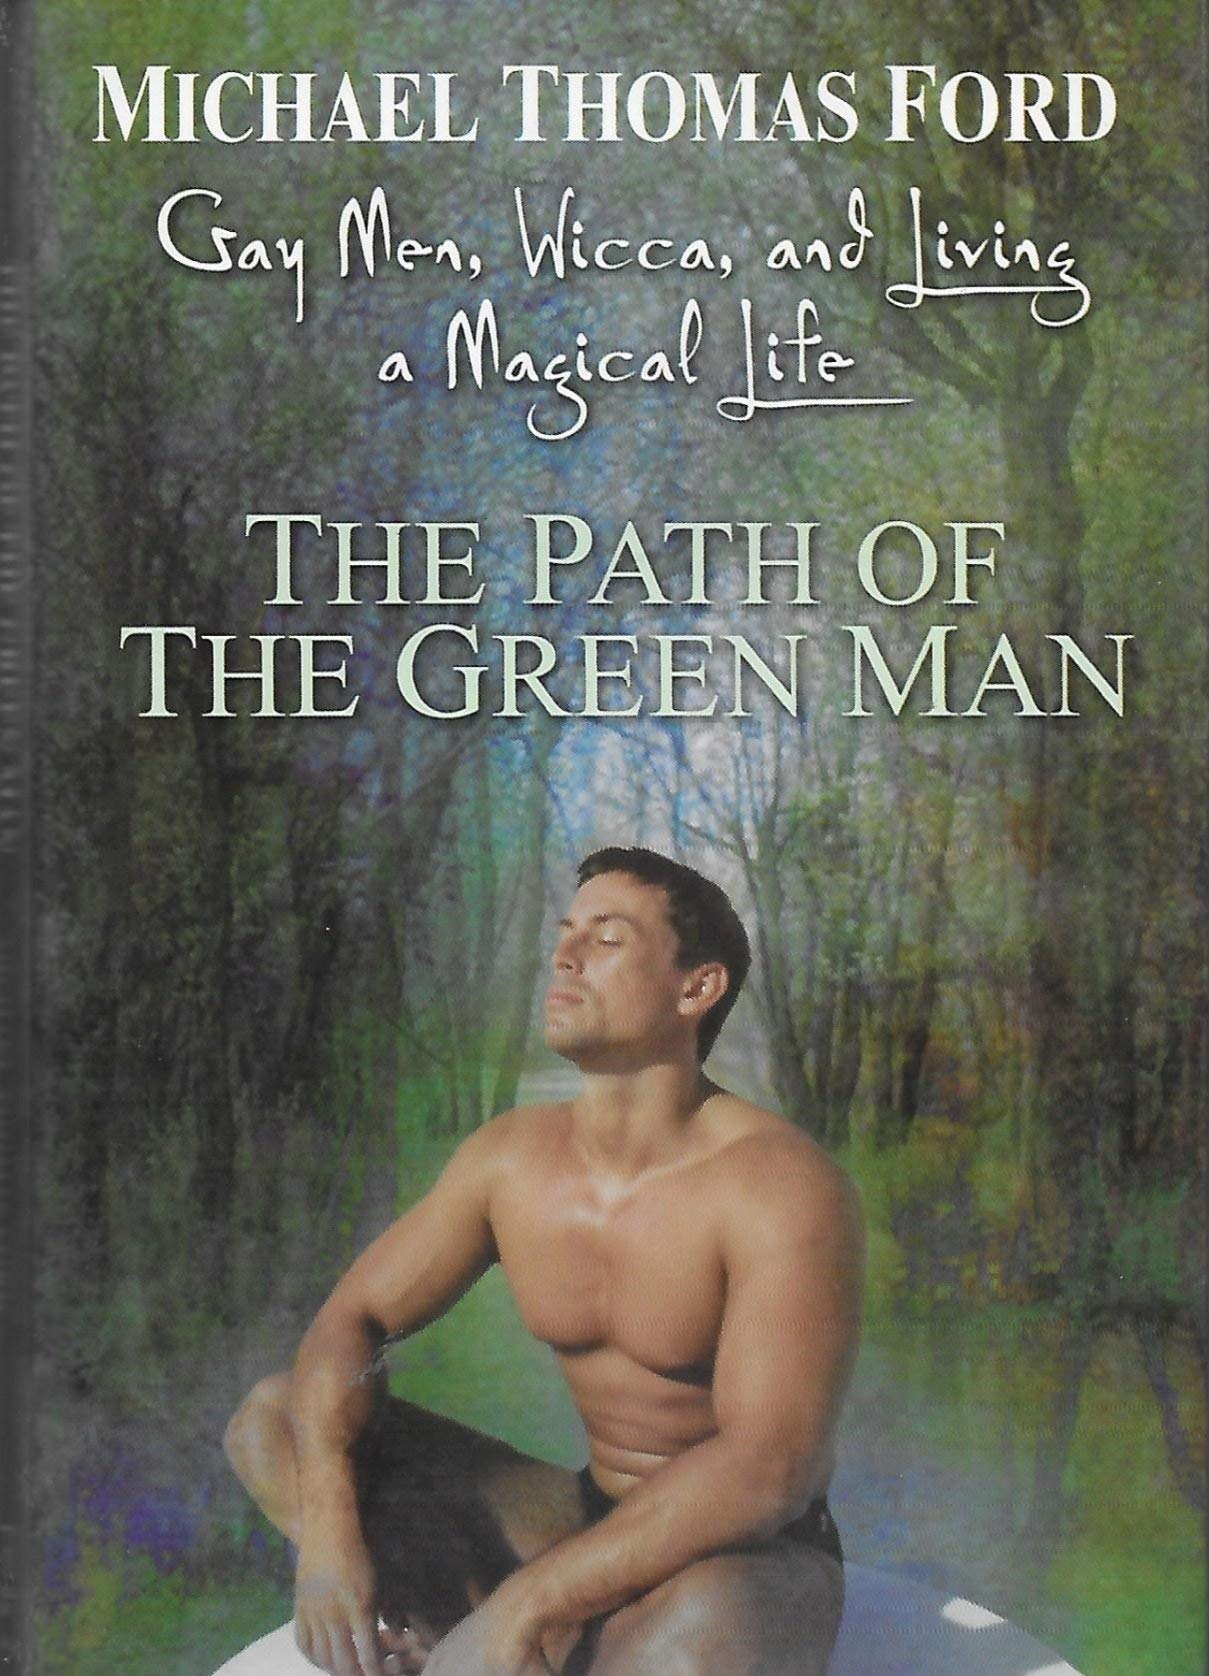 Download Path of the Green Man Gay Men, Wicca and Living a Magical Life ebook